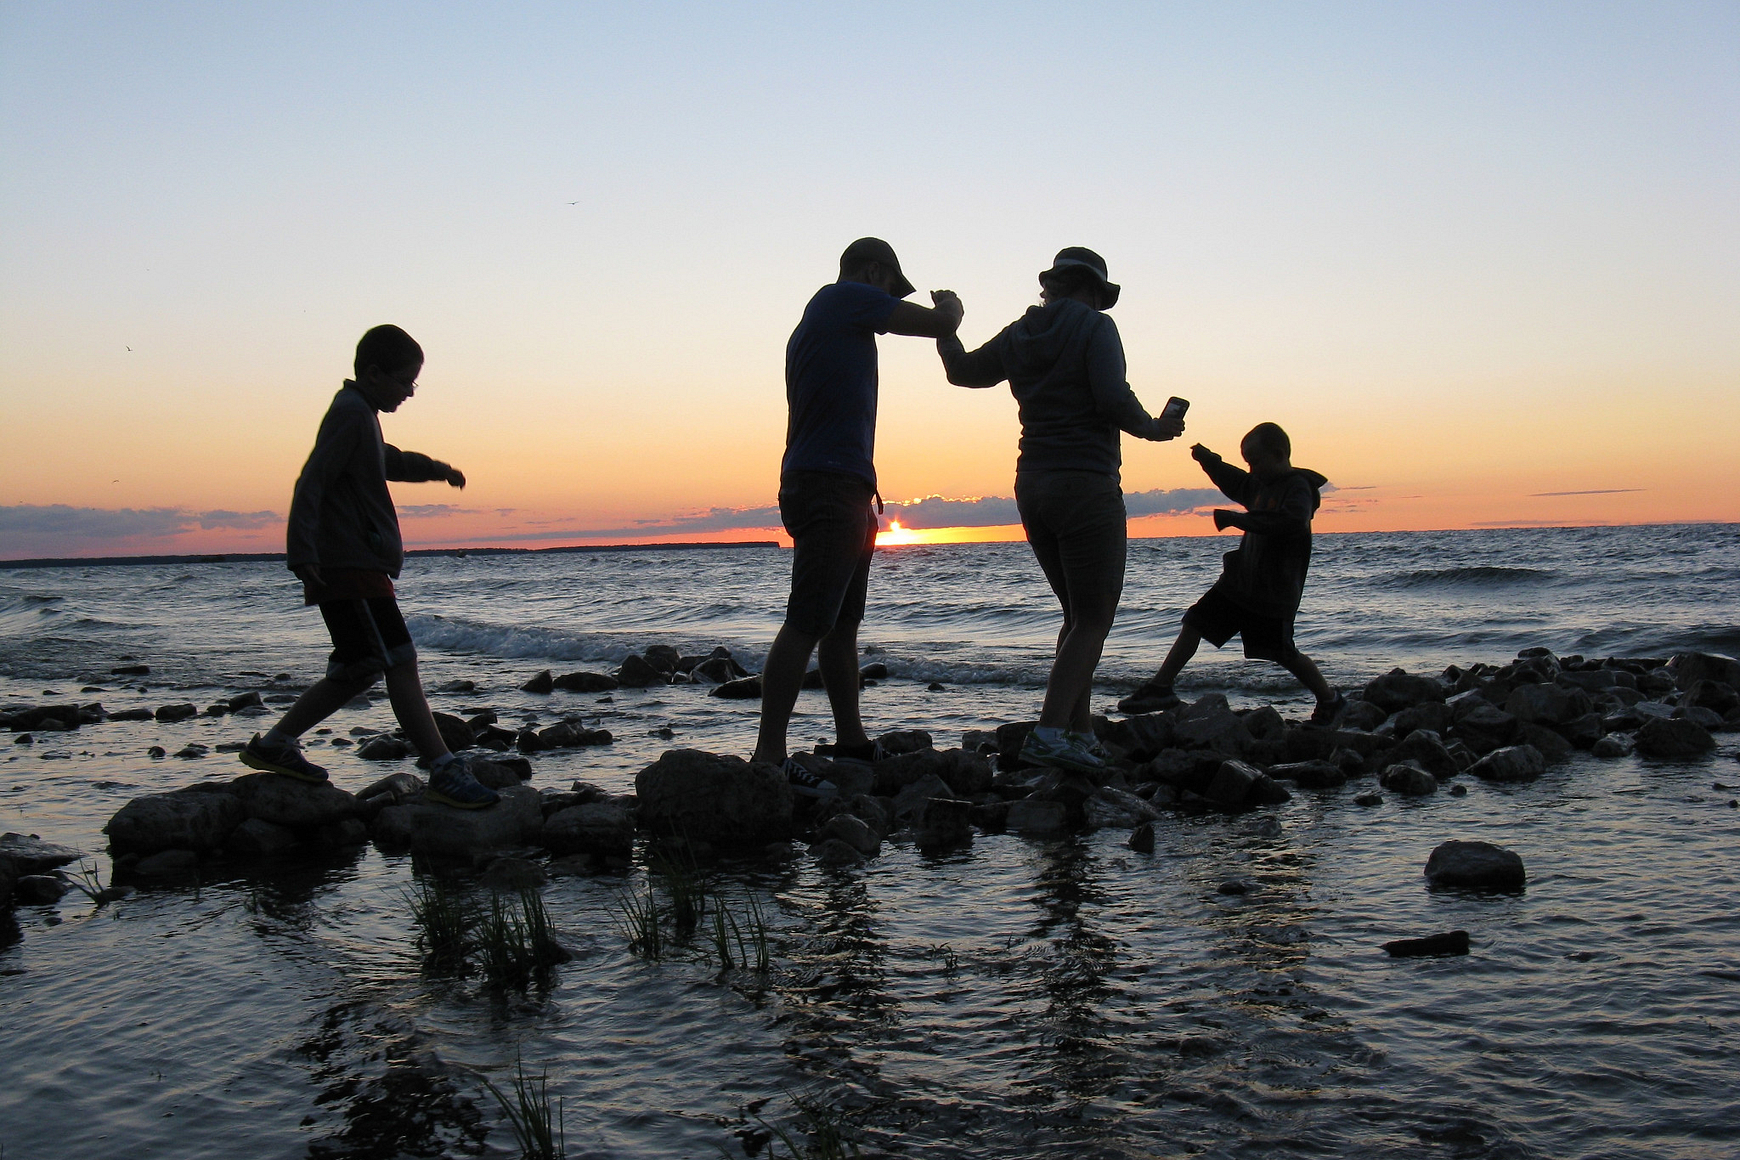 Family walking across stones near shore of Lake Michigan, silhouetted against sunset